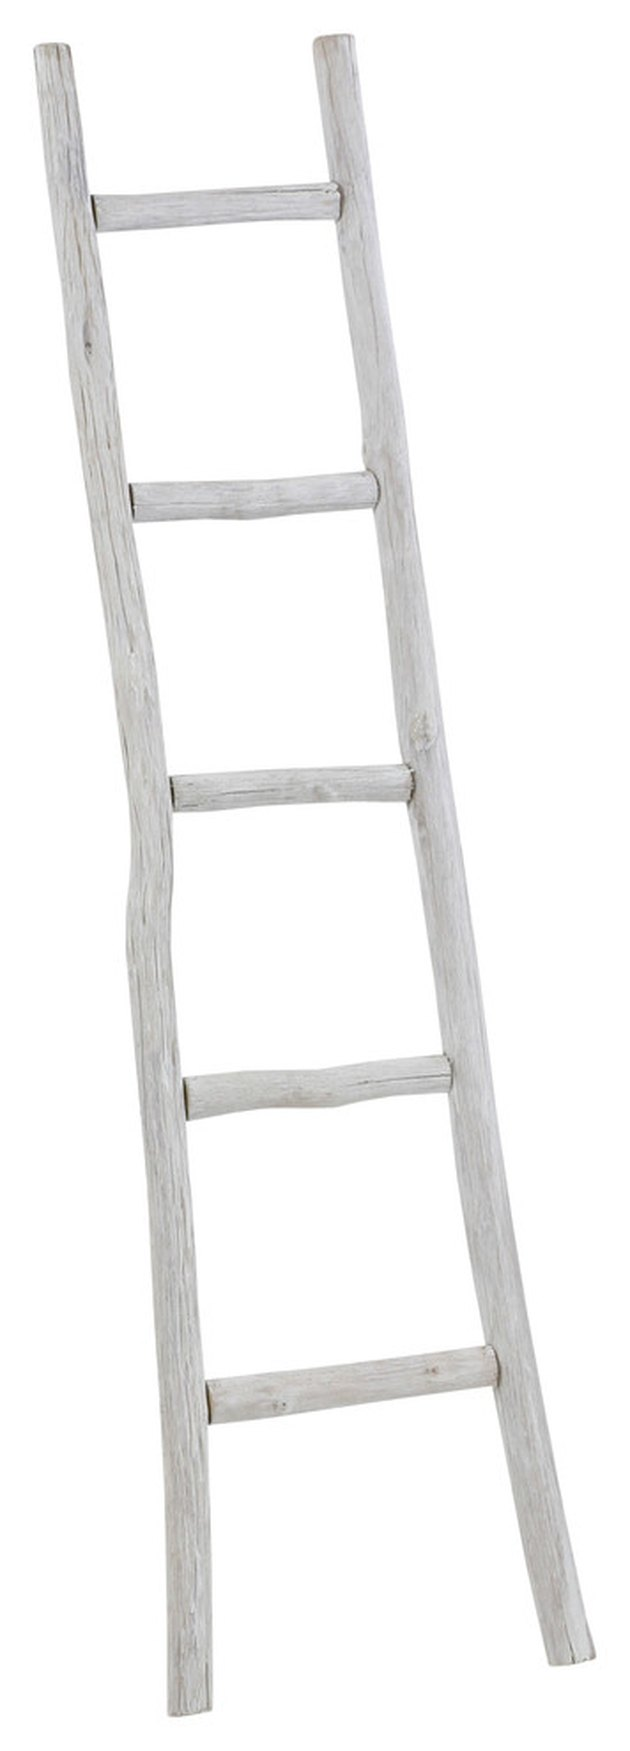 Wooden white decorative ladder